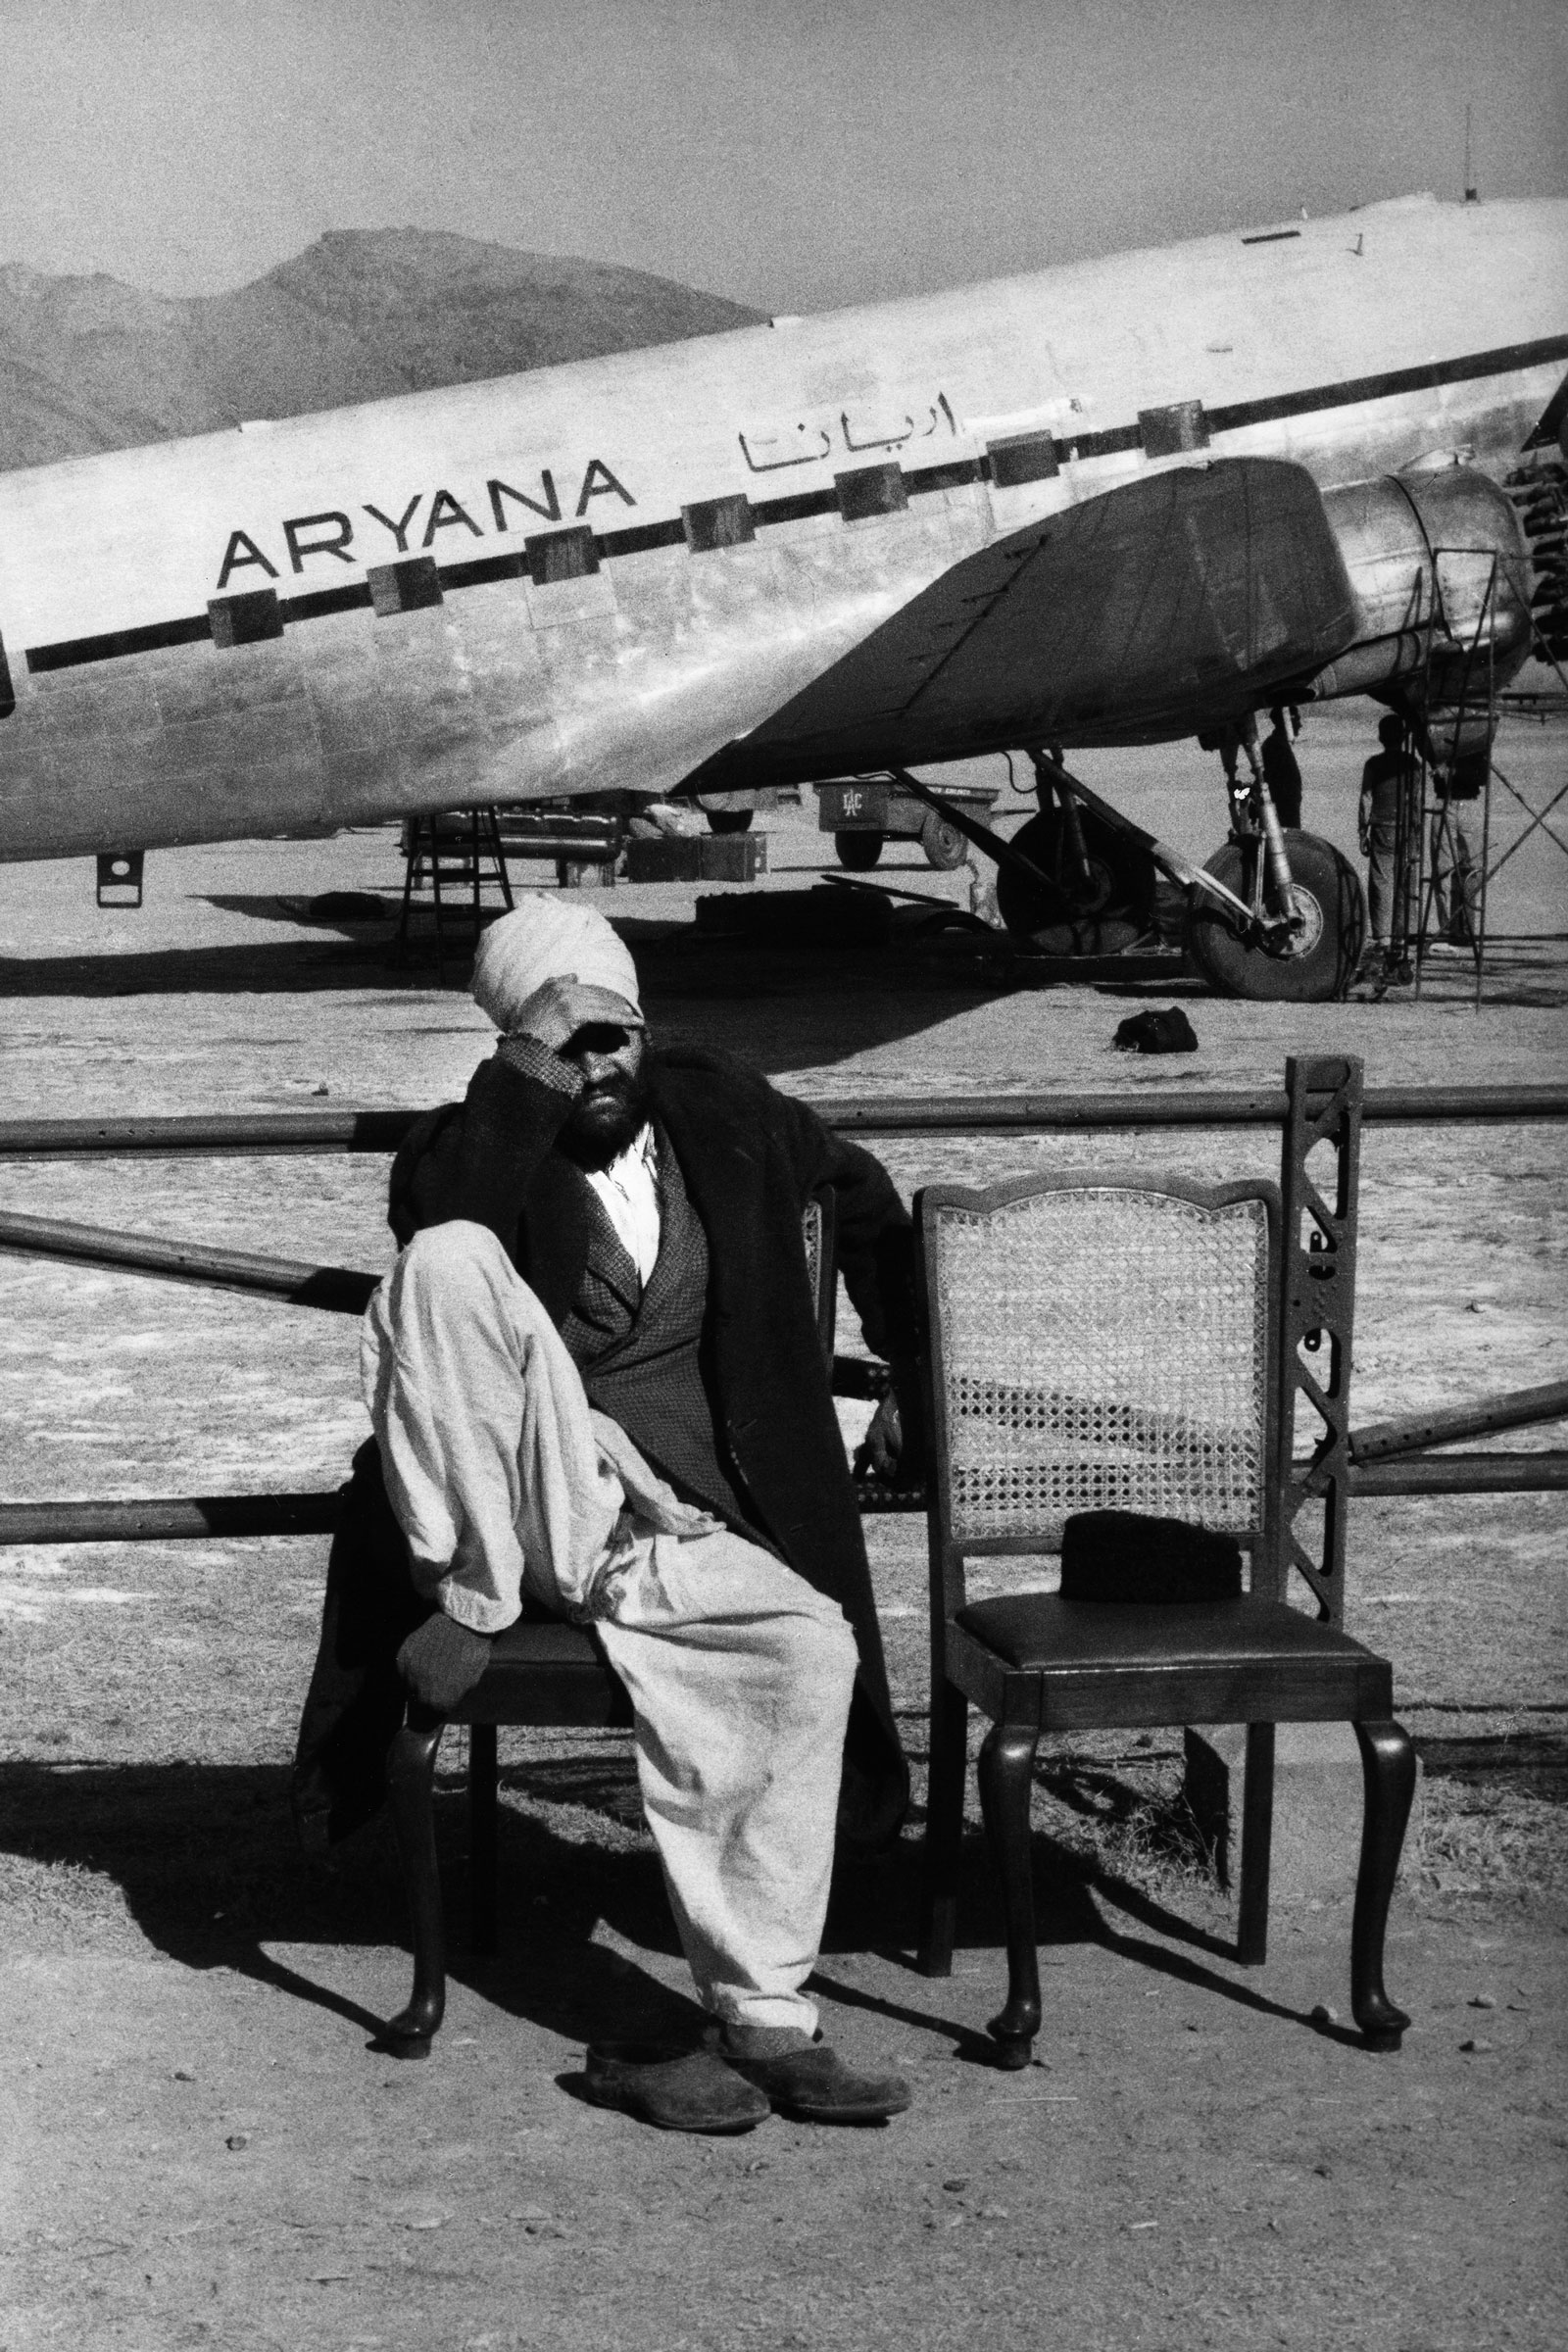 a man sitting on a chair in front of a plane, shields in face from the sun, in black and white